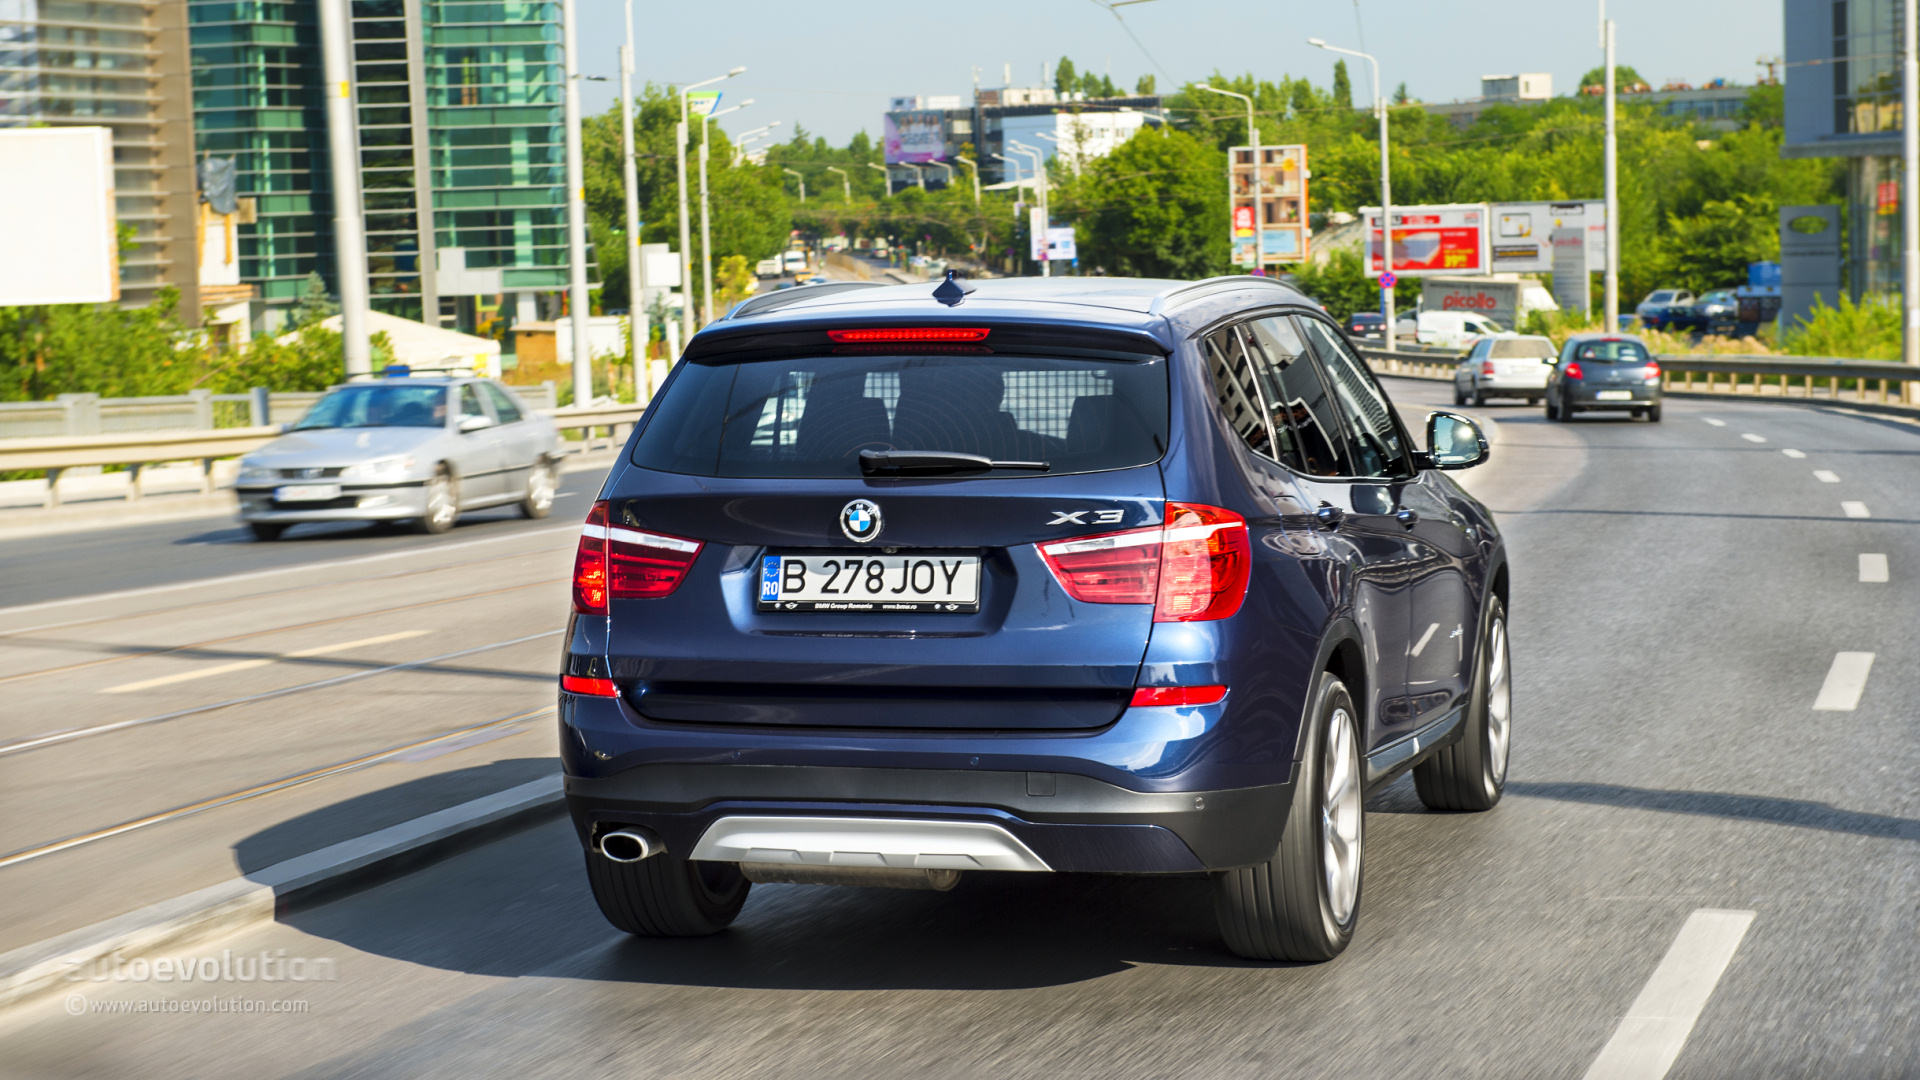 Good Guys Auto >> 2015 BMW X3 Review - autoevolution